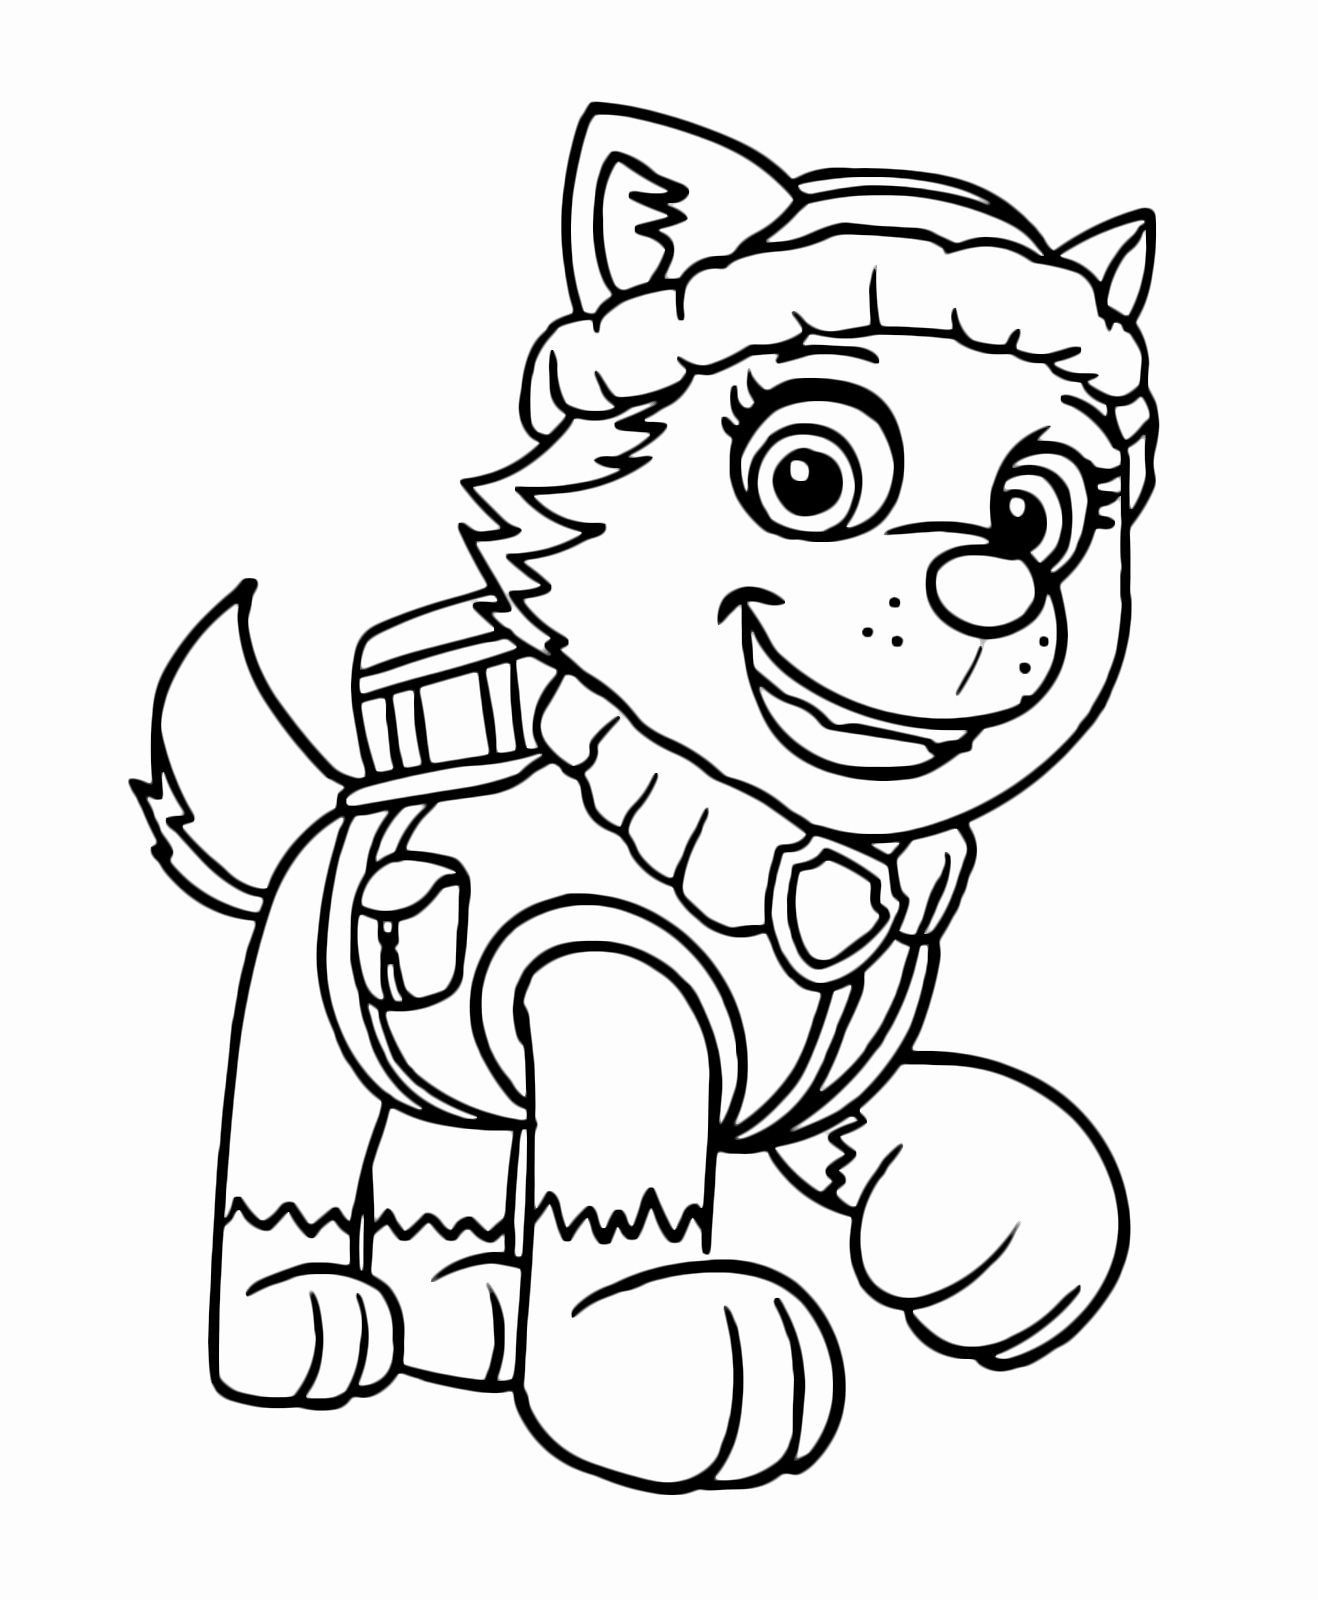 Everest Paw Patrol Coloring Page Youngandtae Com In 2020 Paw Patrol Coloring Pages Paw Patrol Coloring Everest Paw Patrol